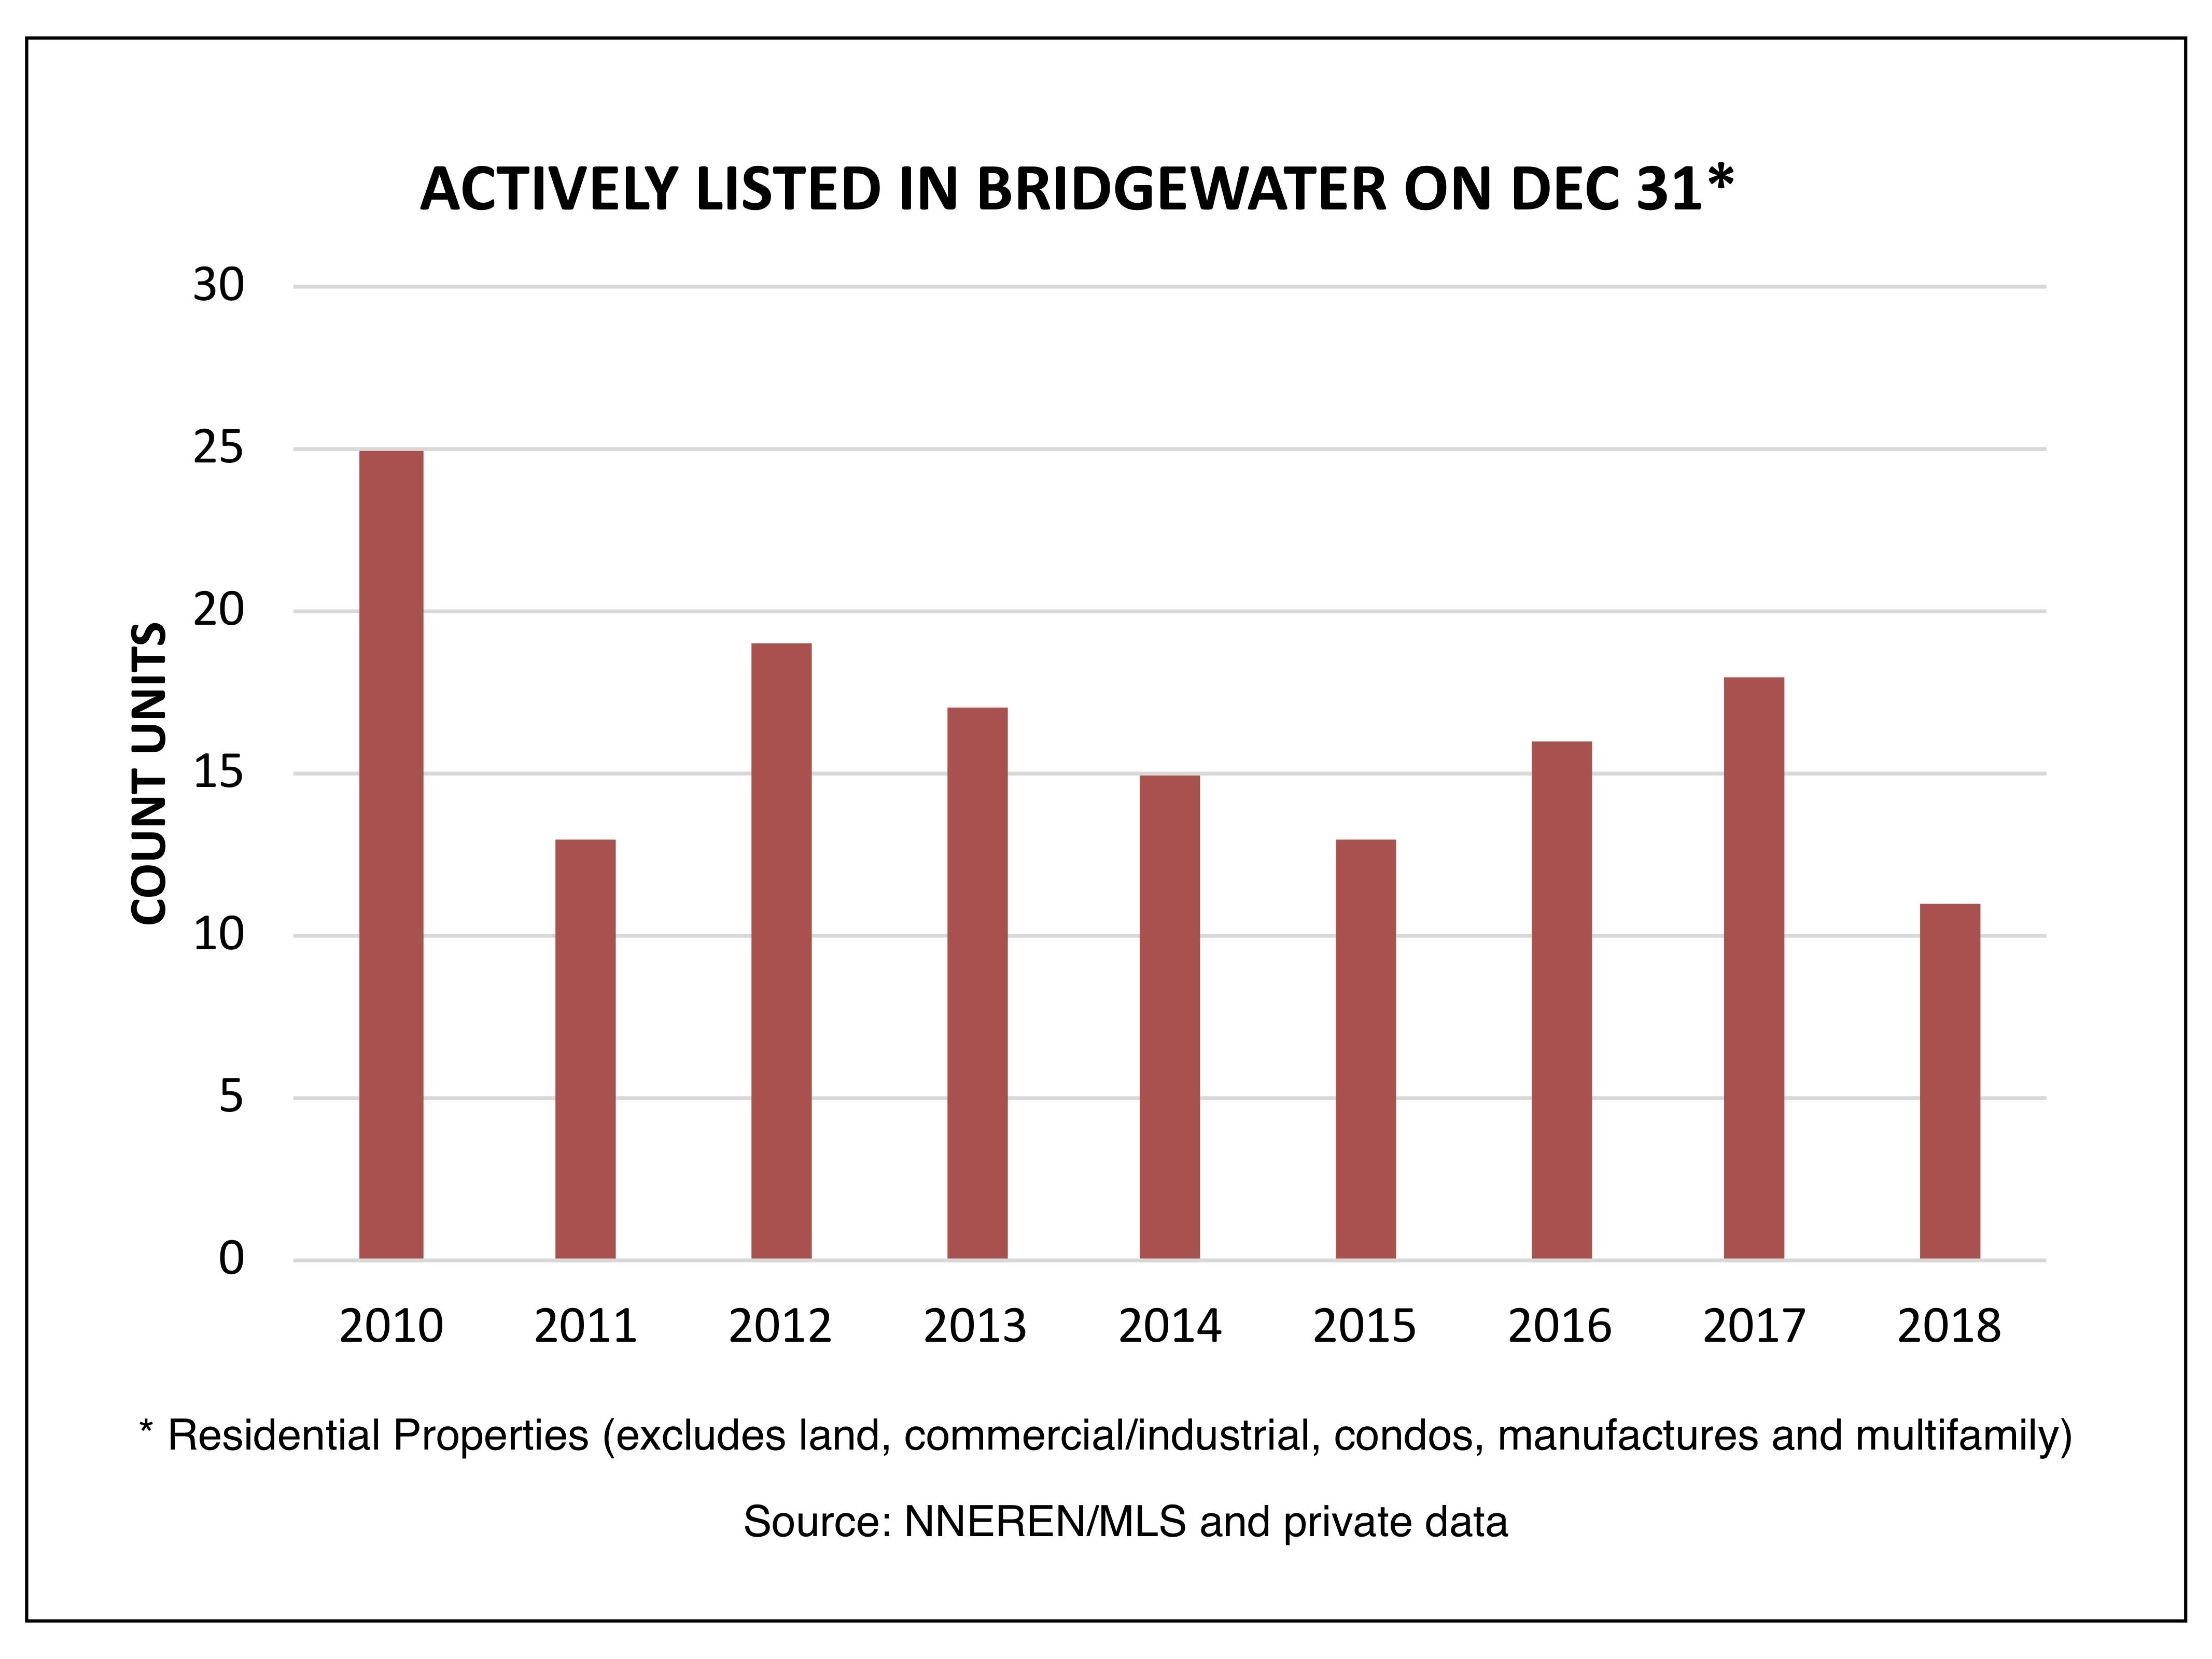 Bridgewater - Actively Listed on December 31